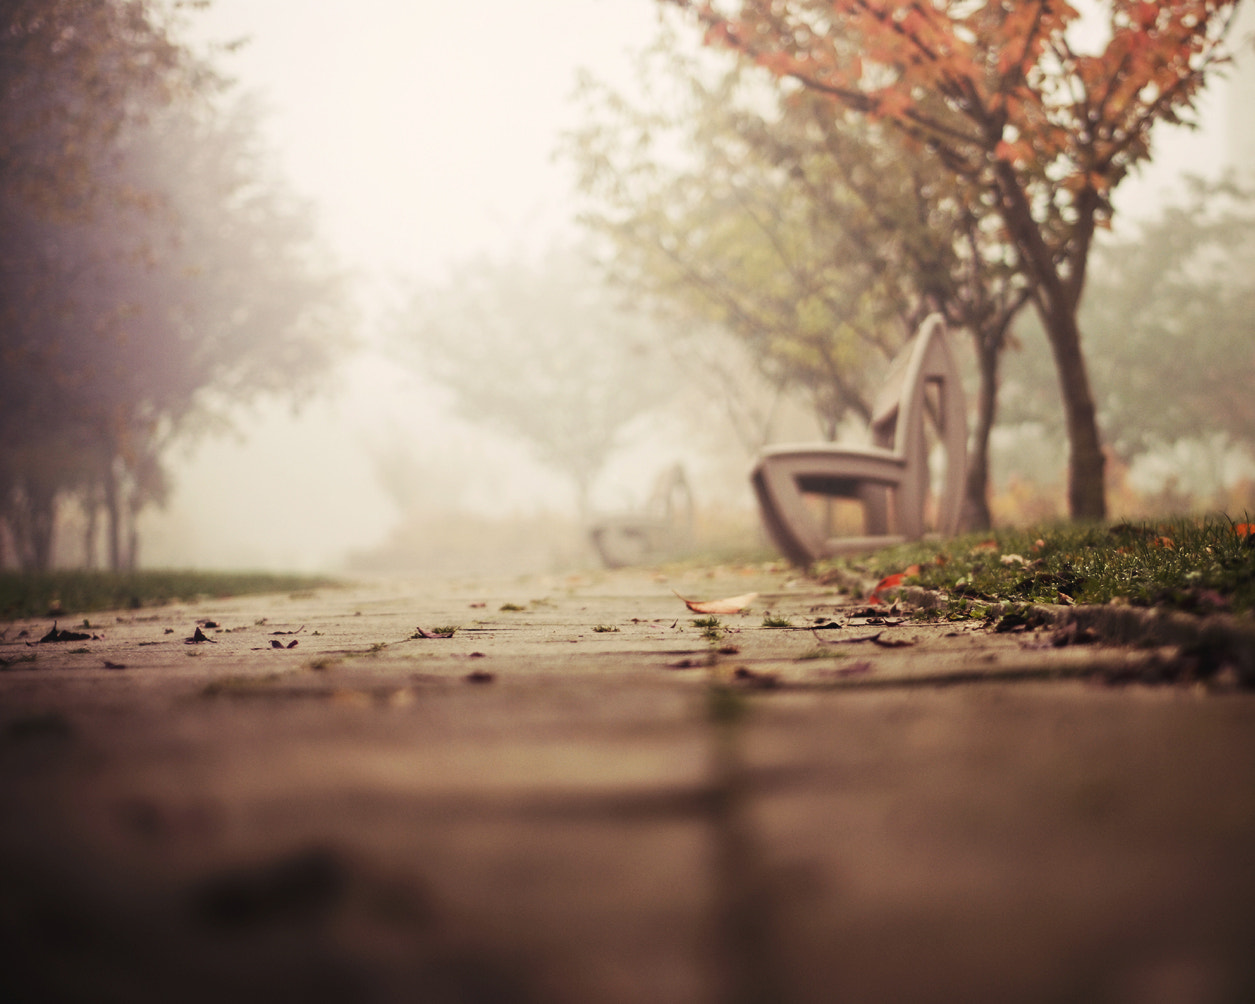 Photograph Leaves on your path by Justyna Frąckowiak on 500px